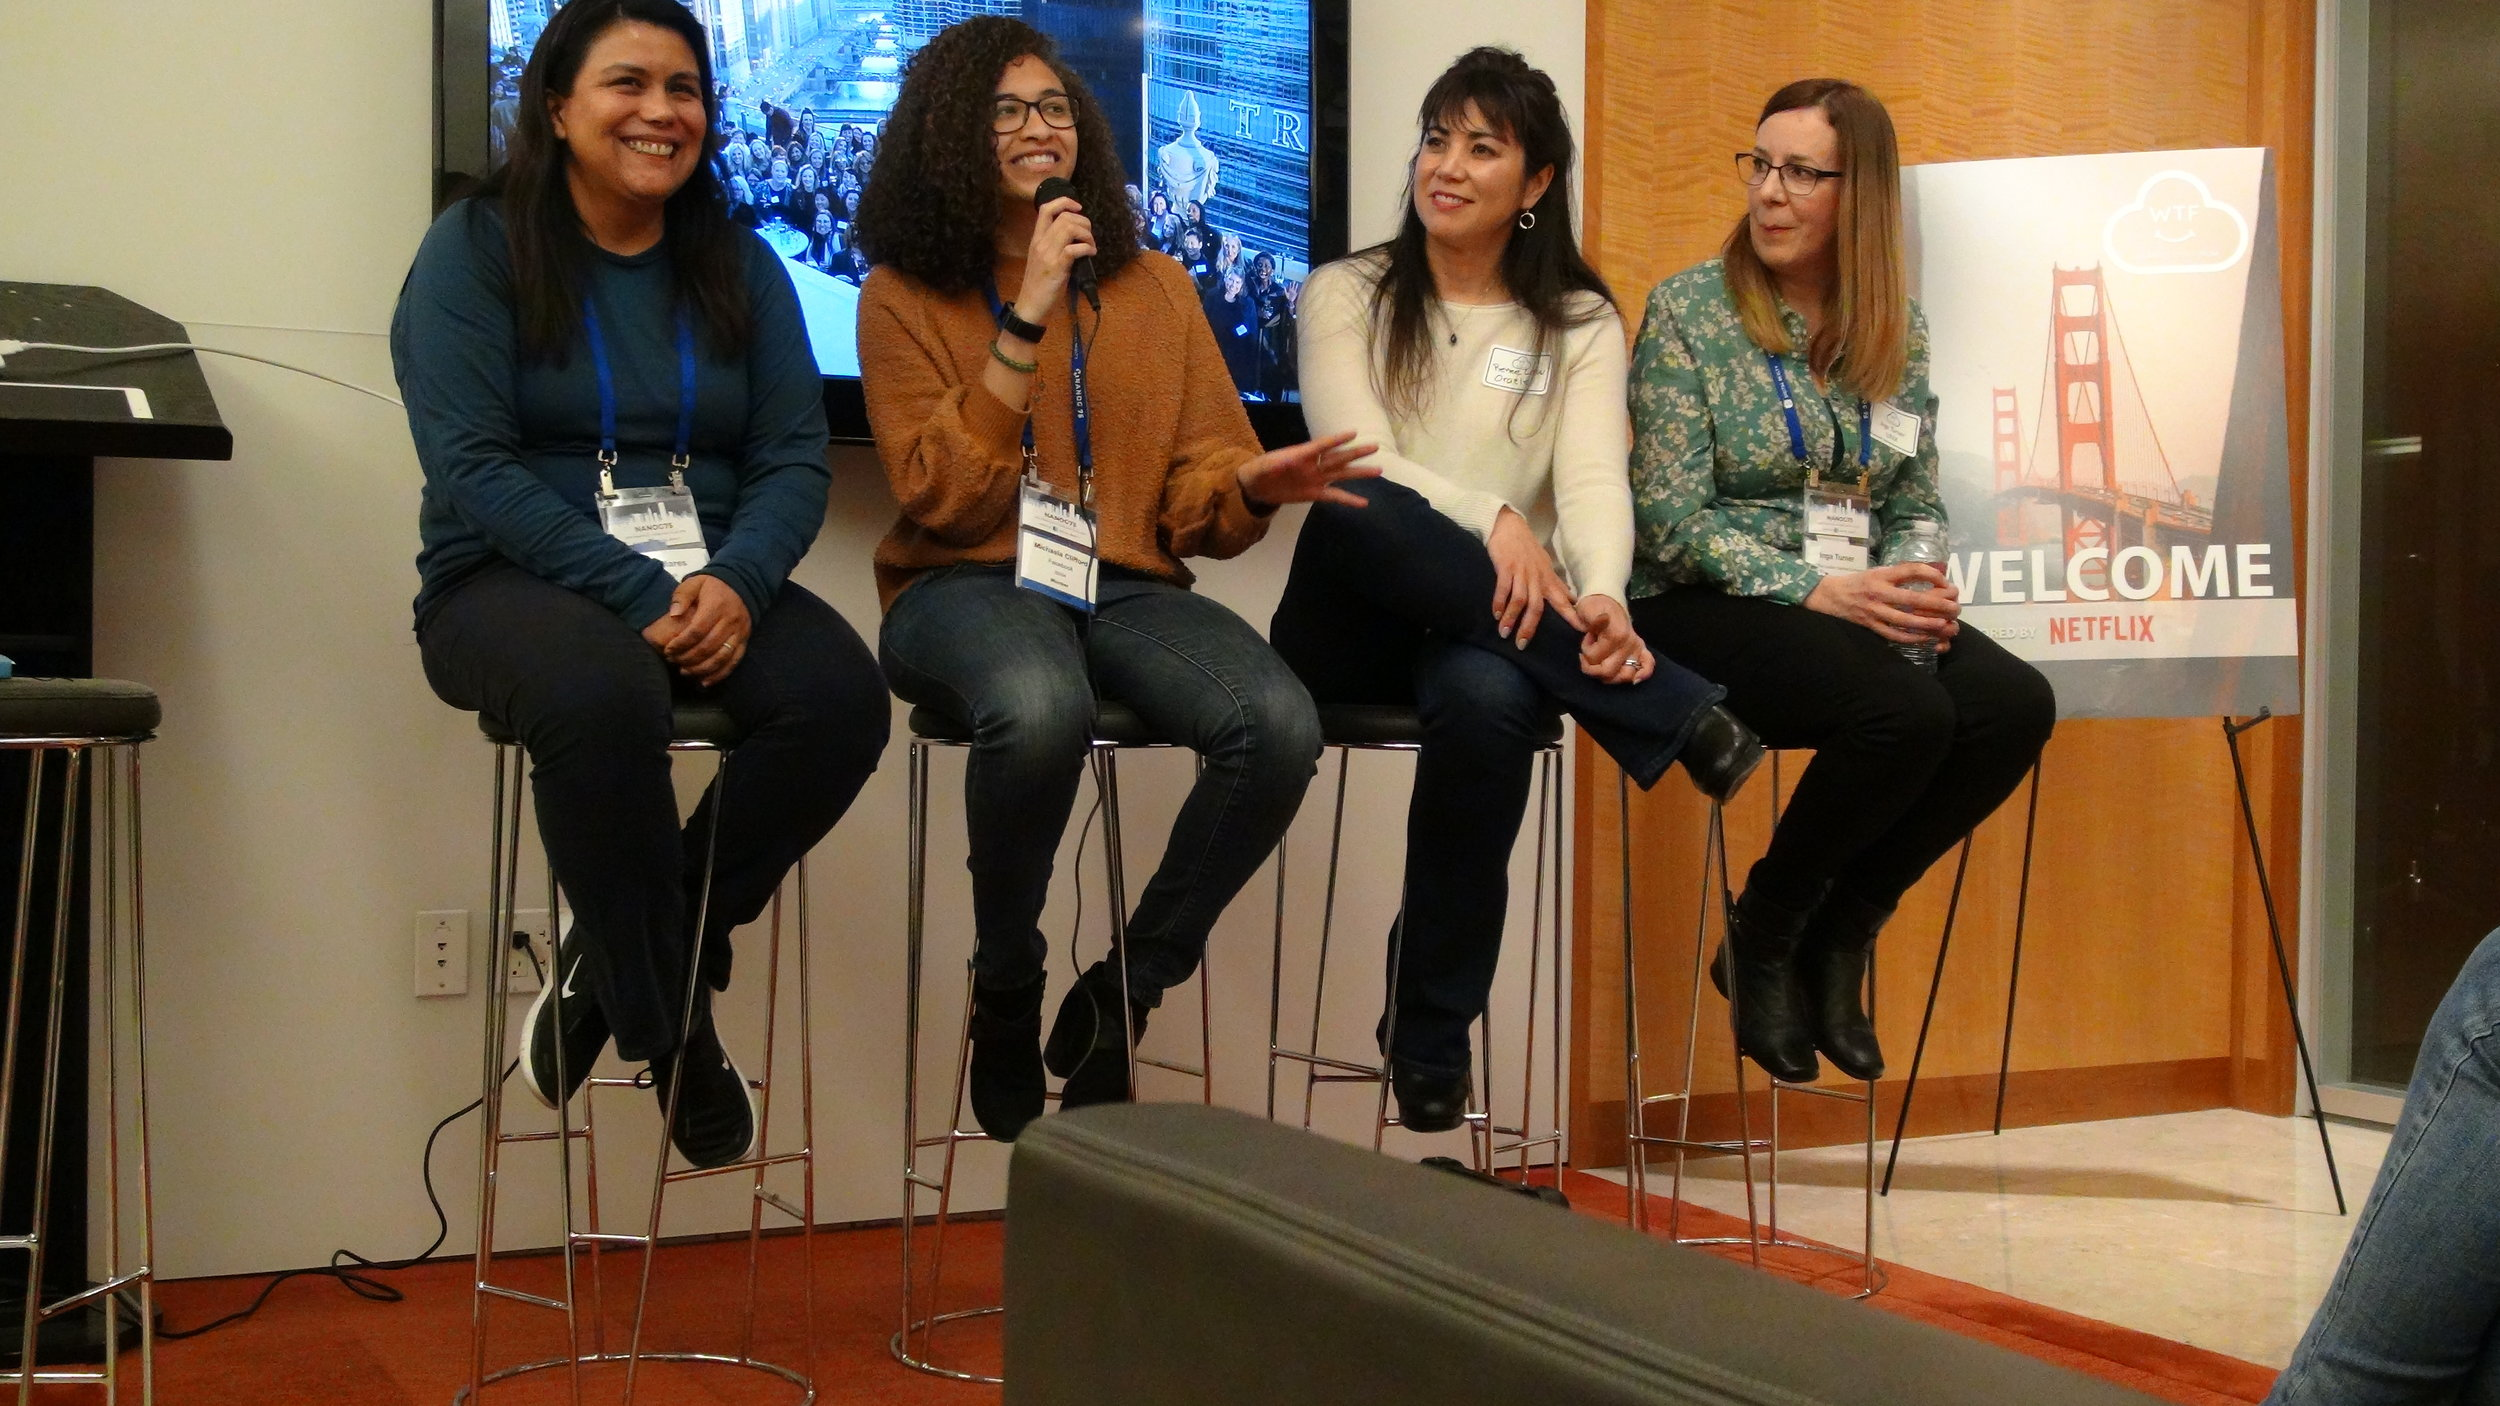 Diversity & Inclusion panel at the WTF NANOG 75 event.    From left to right: Talia Mares (Facebook), Kayla Clifford (Facebook), Renee Law (Oracle), and Inga Turner (Linx)